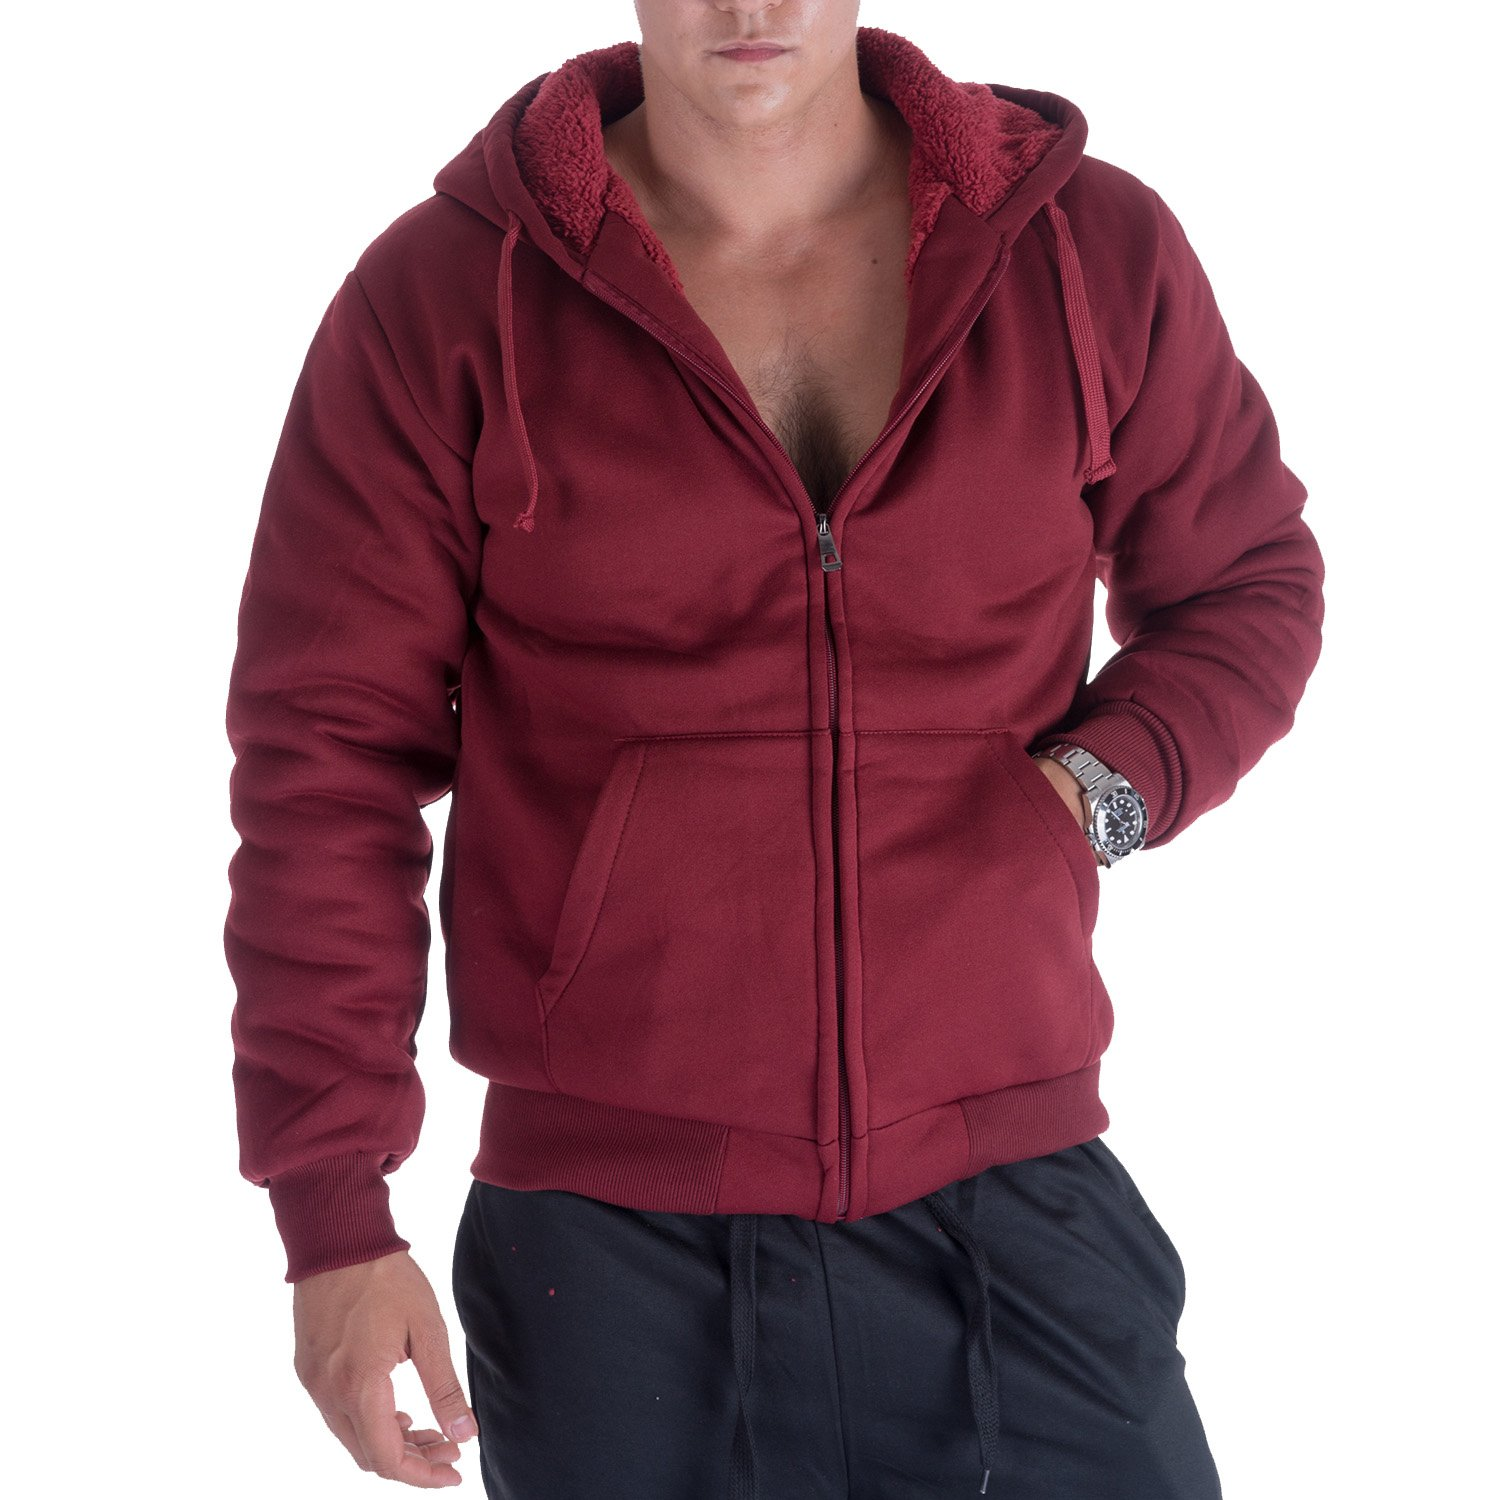 Gary Com Heavyweight Hoodies for Men, 1.8 lbs Sherpa Lined Fleece Full Zip Plus Size Sweatshirt Jackets Outwear